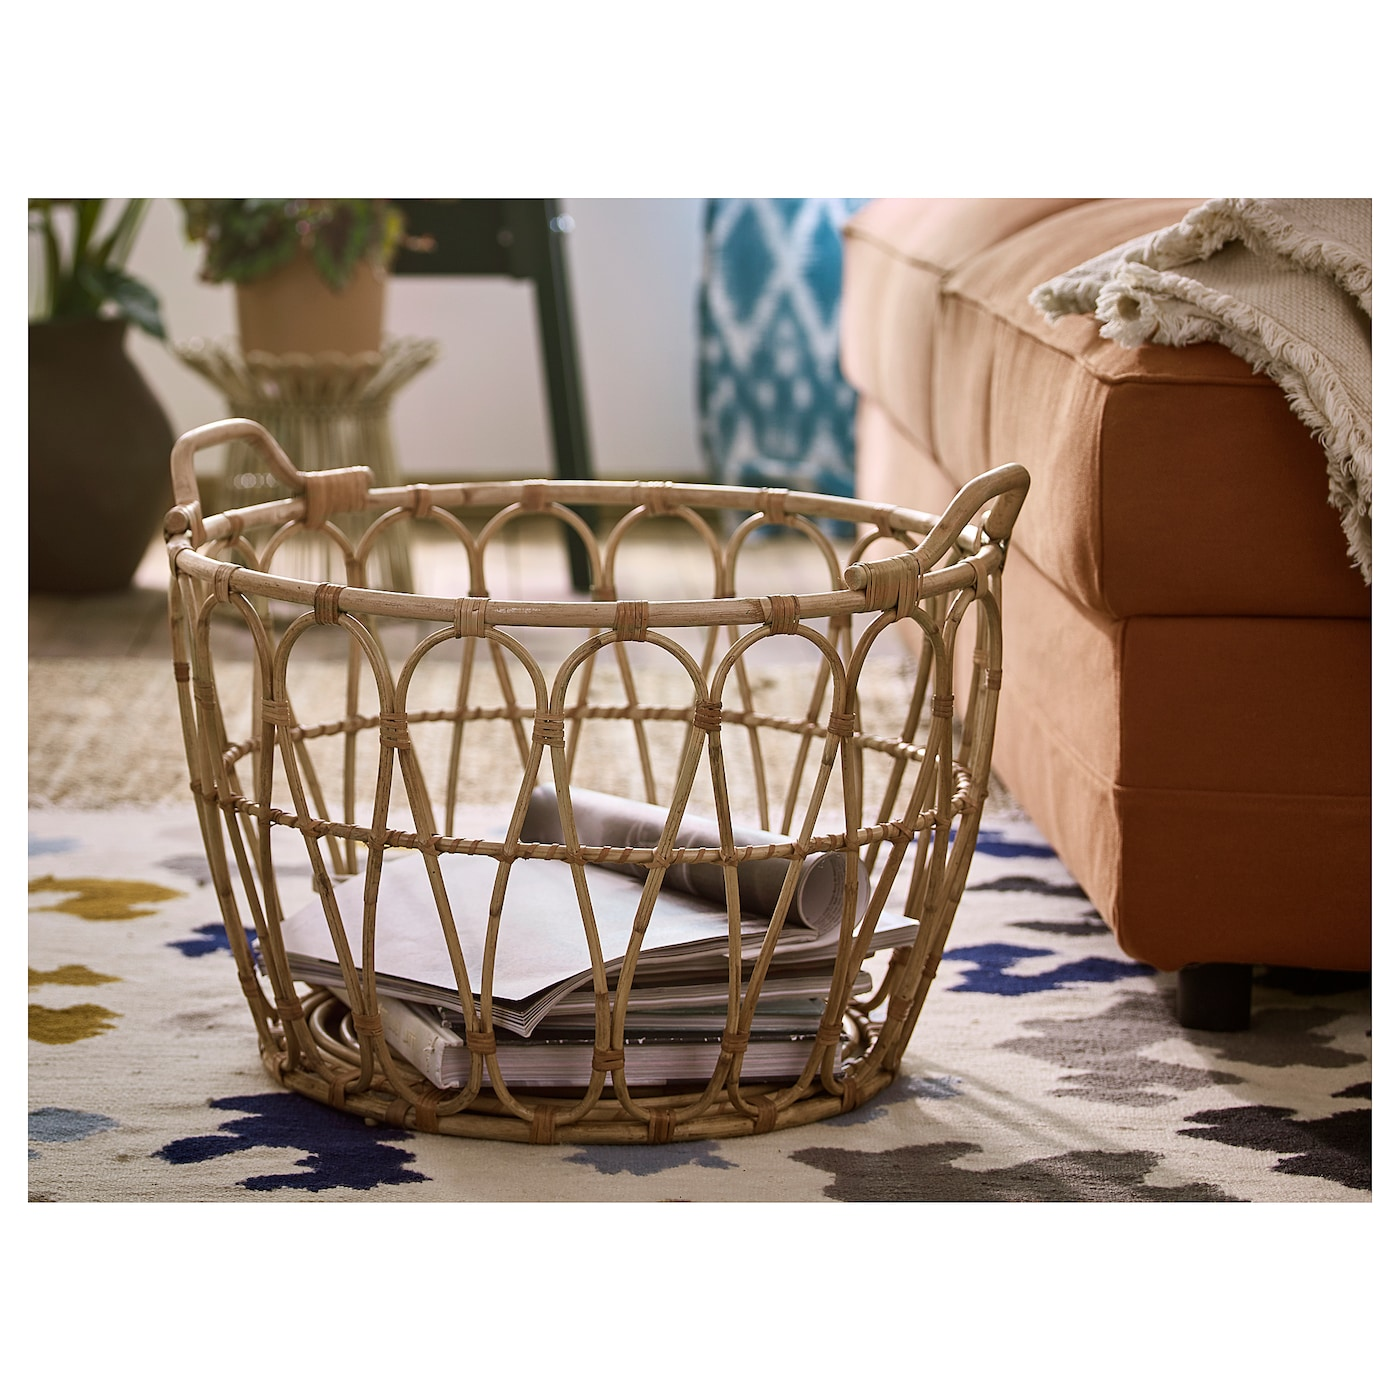 IKEA SNIDAD basket This braided basket has a unique look since each basket is handmade.